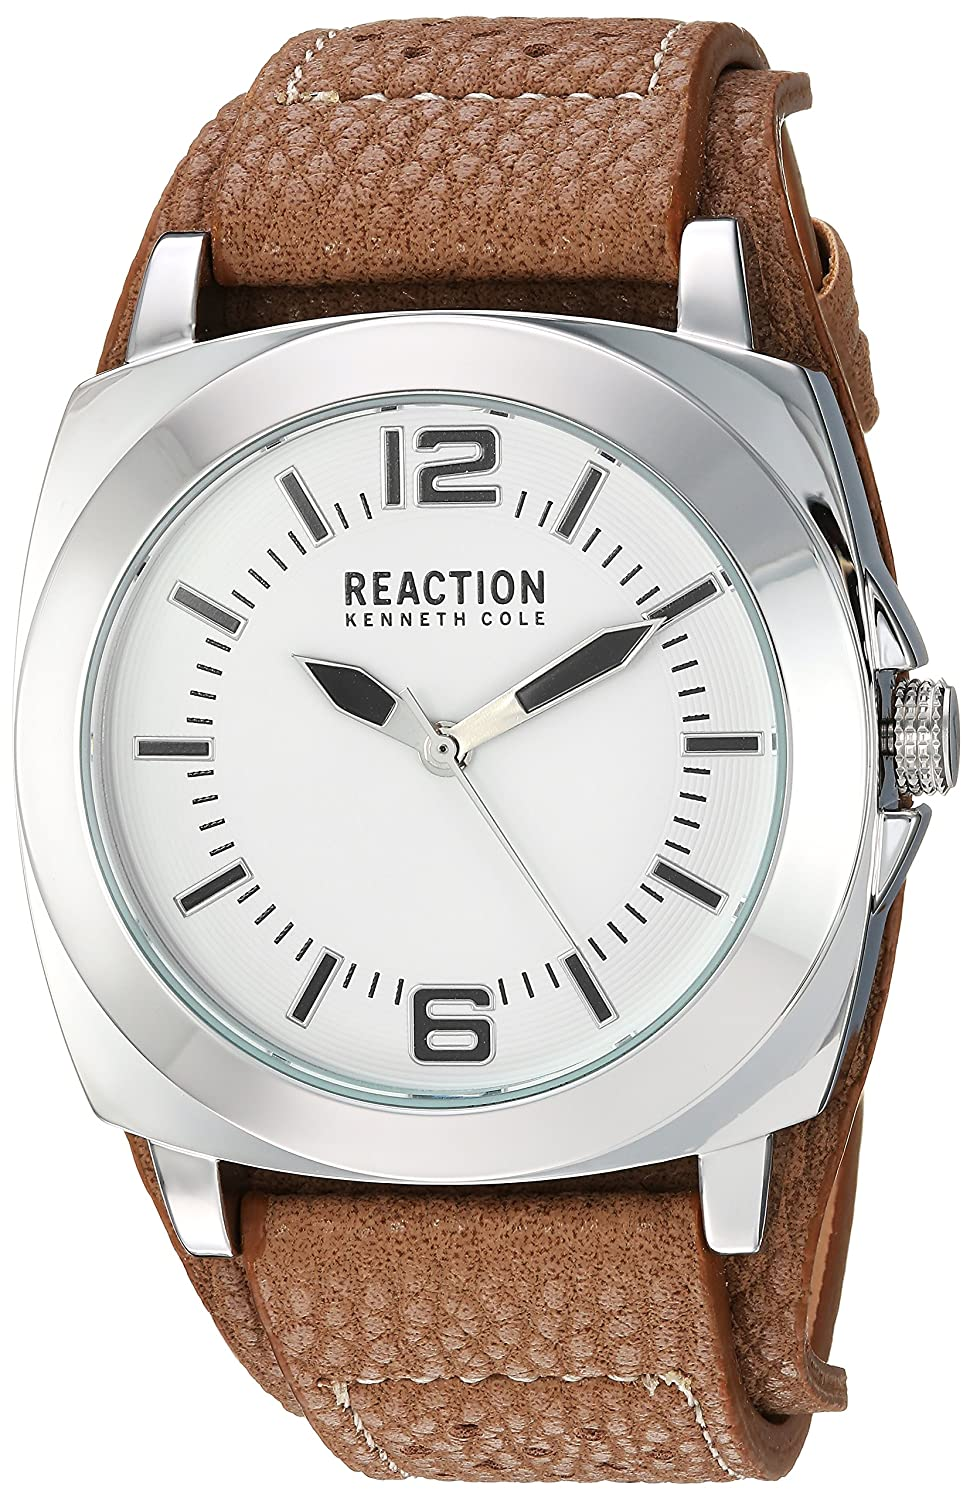 Amazon.com: Kenneth Cole New York Male Quartz Watch: Kenneth Cole Reaction: Watches